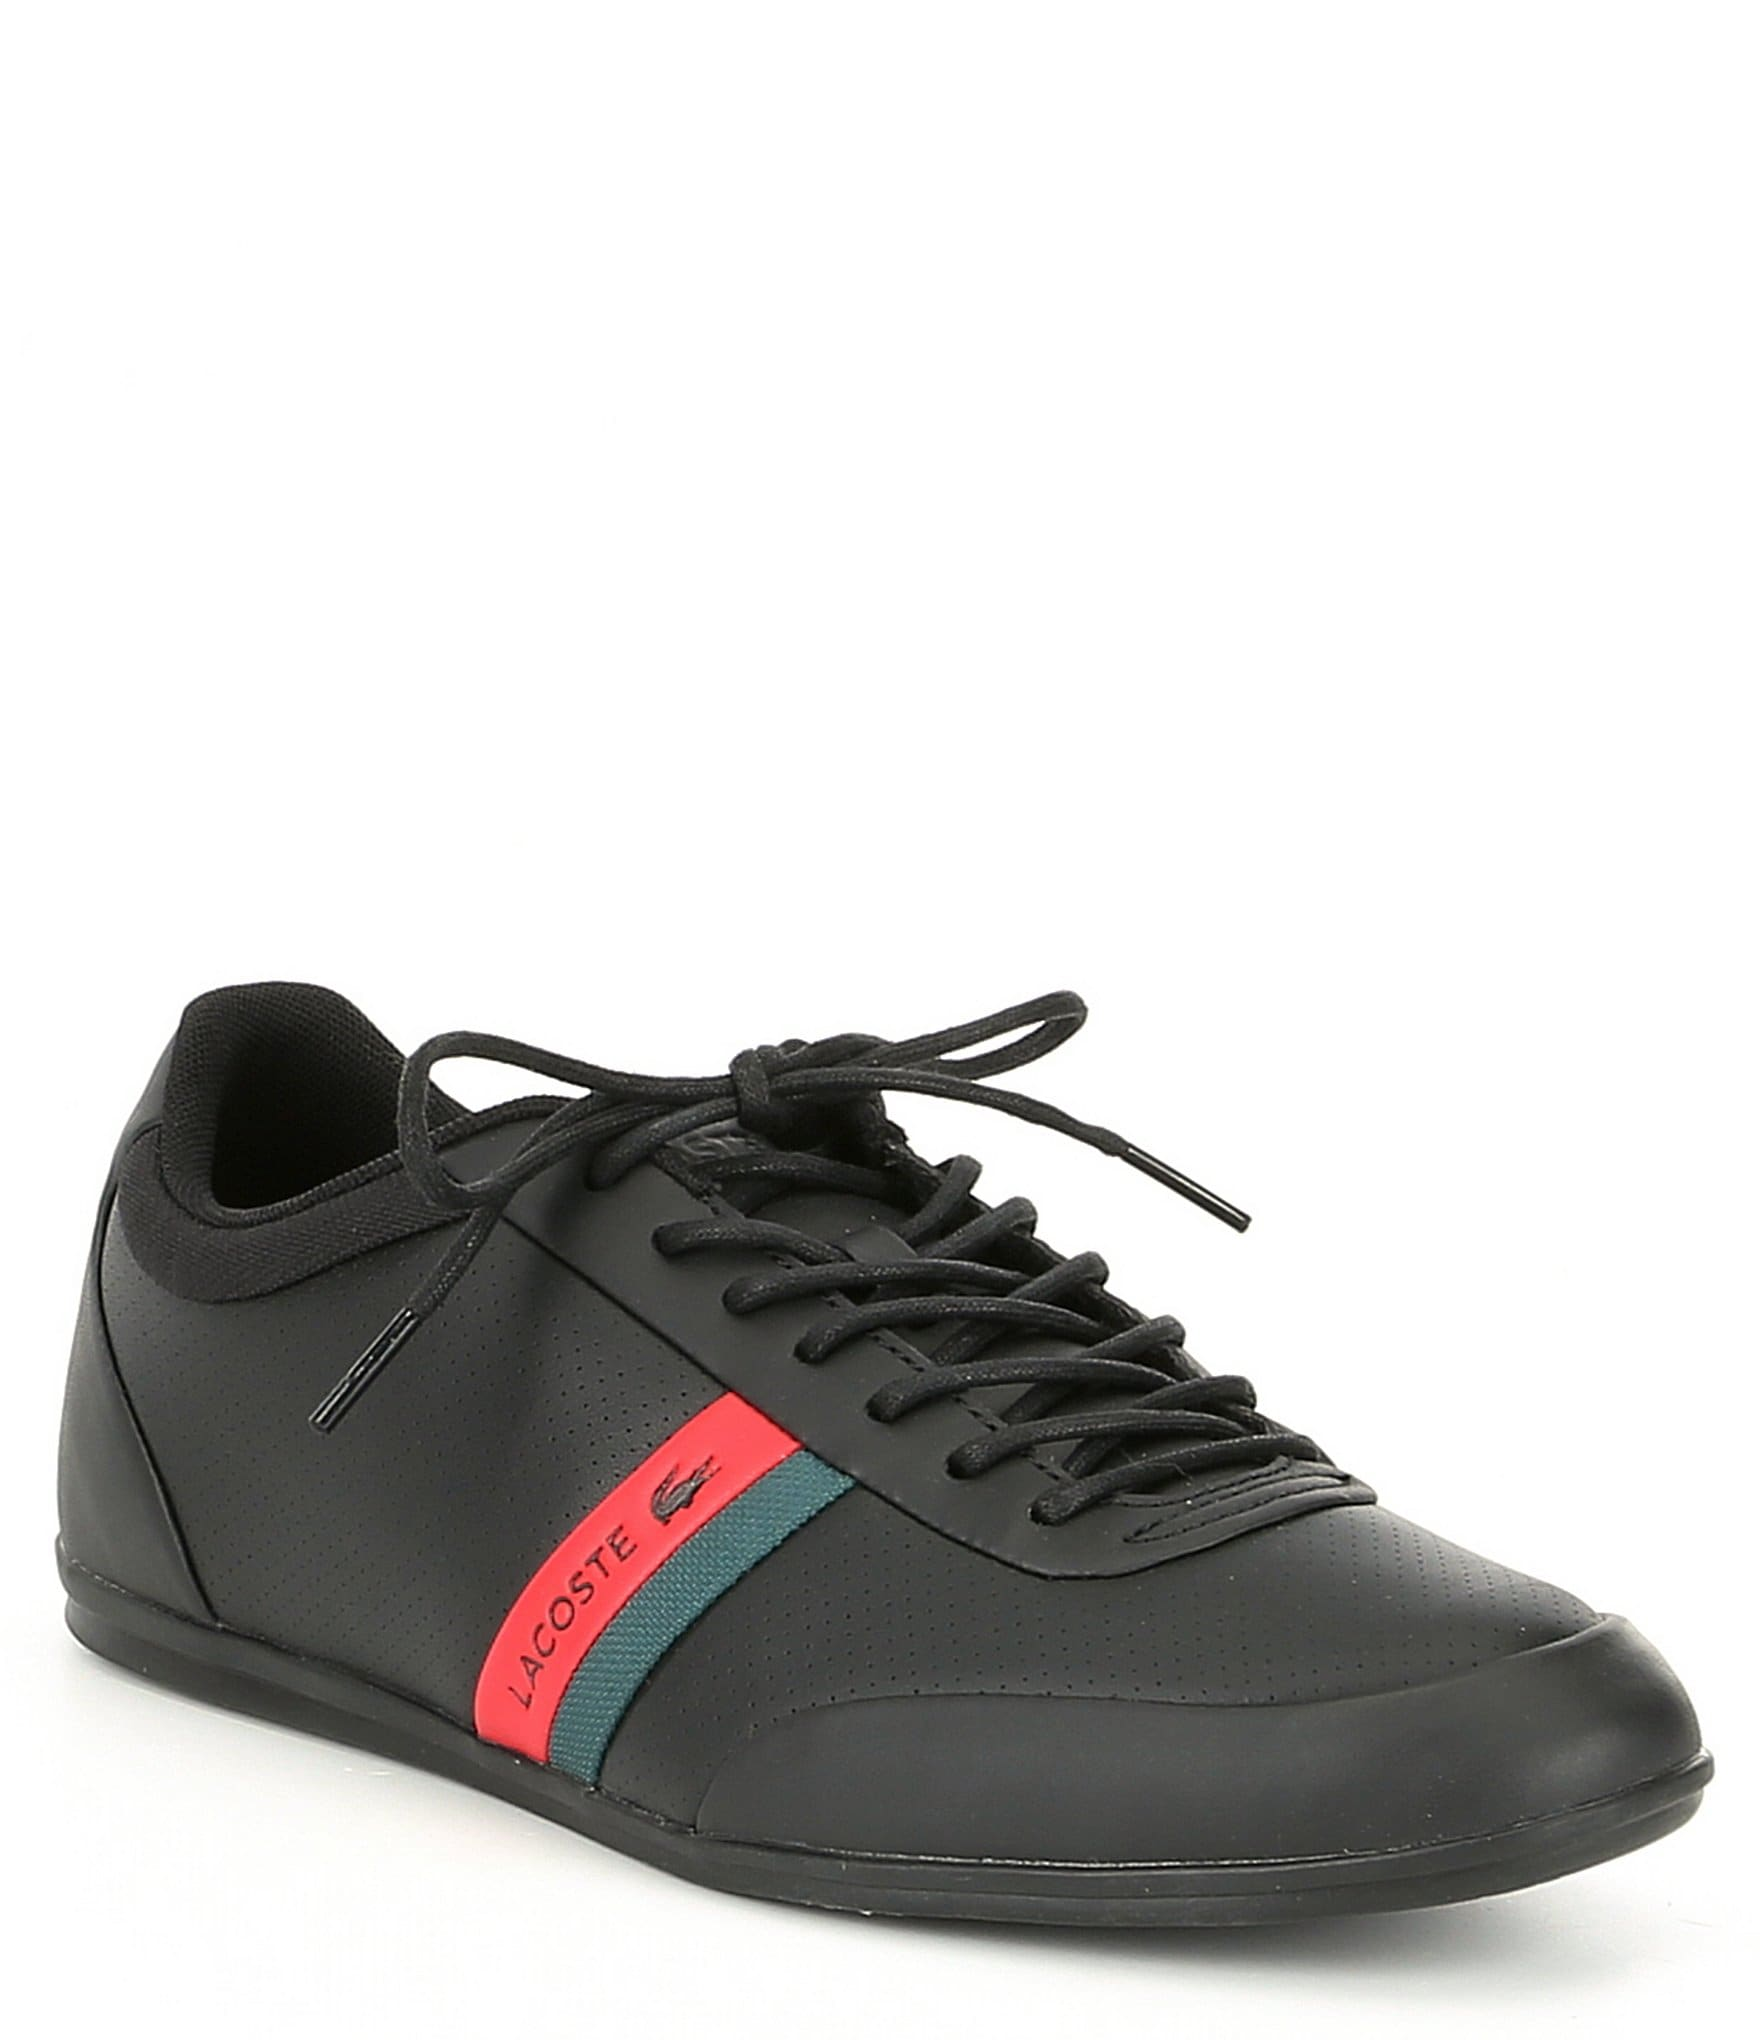 b4752be73 Lacoste Shoes